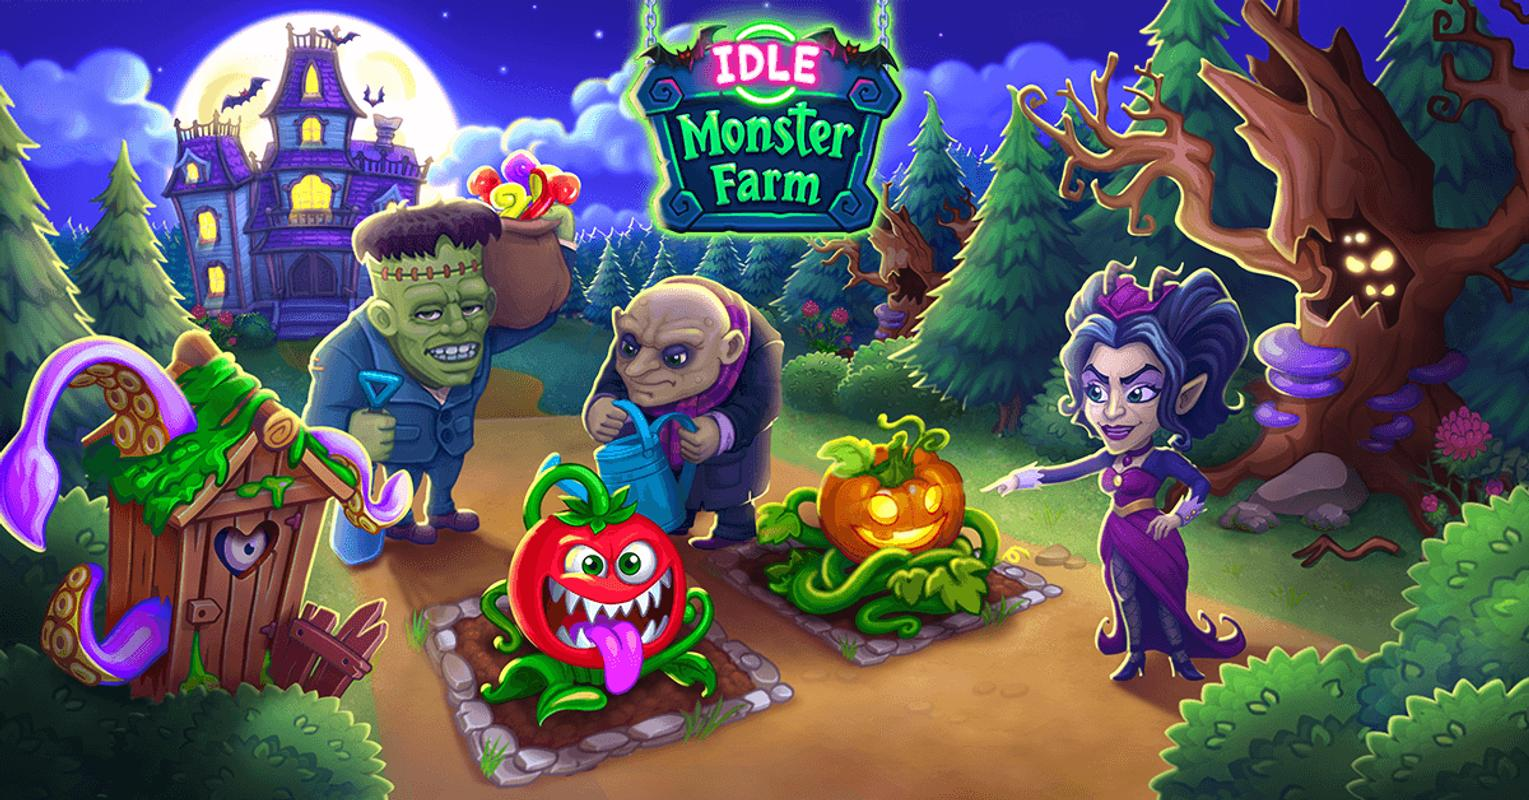 idle monster 1